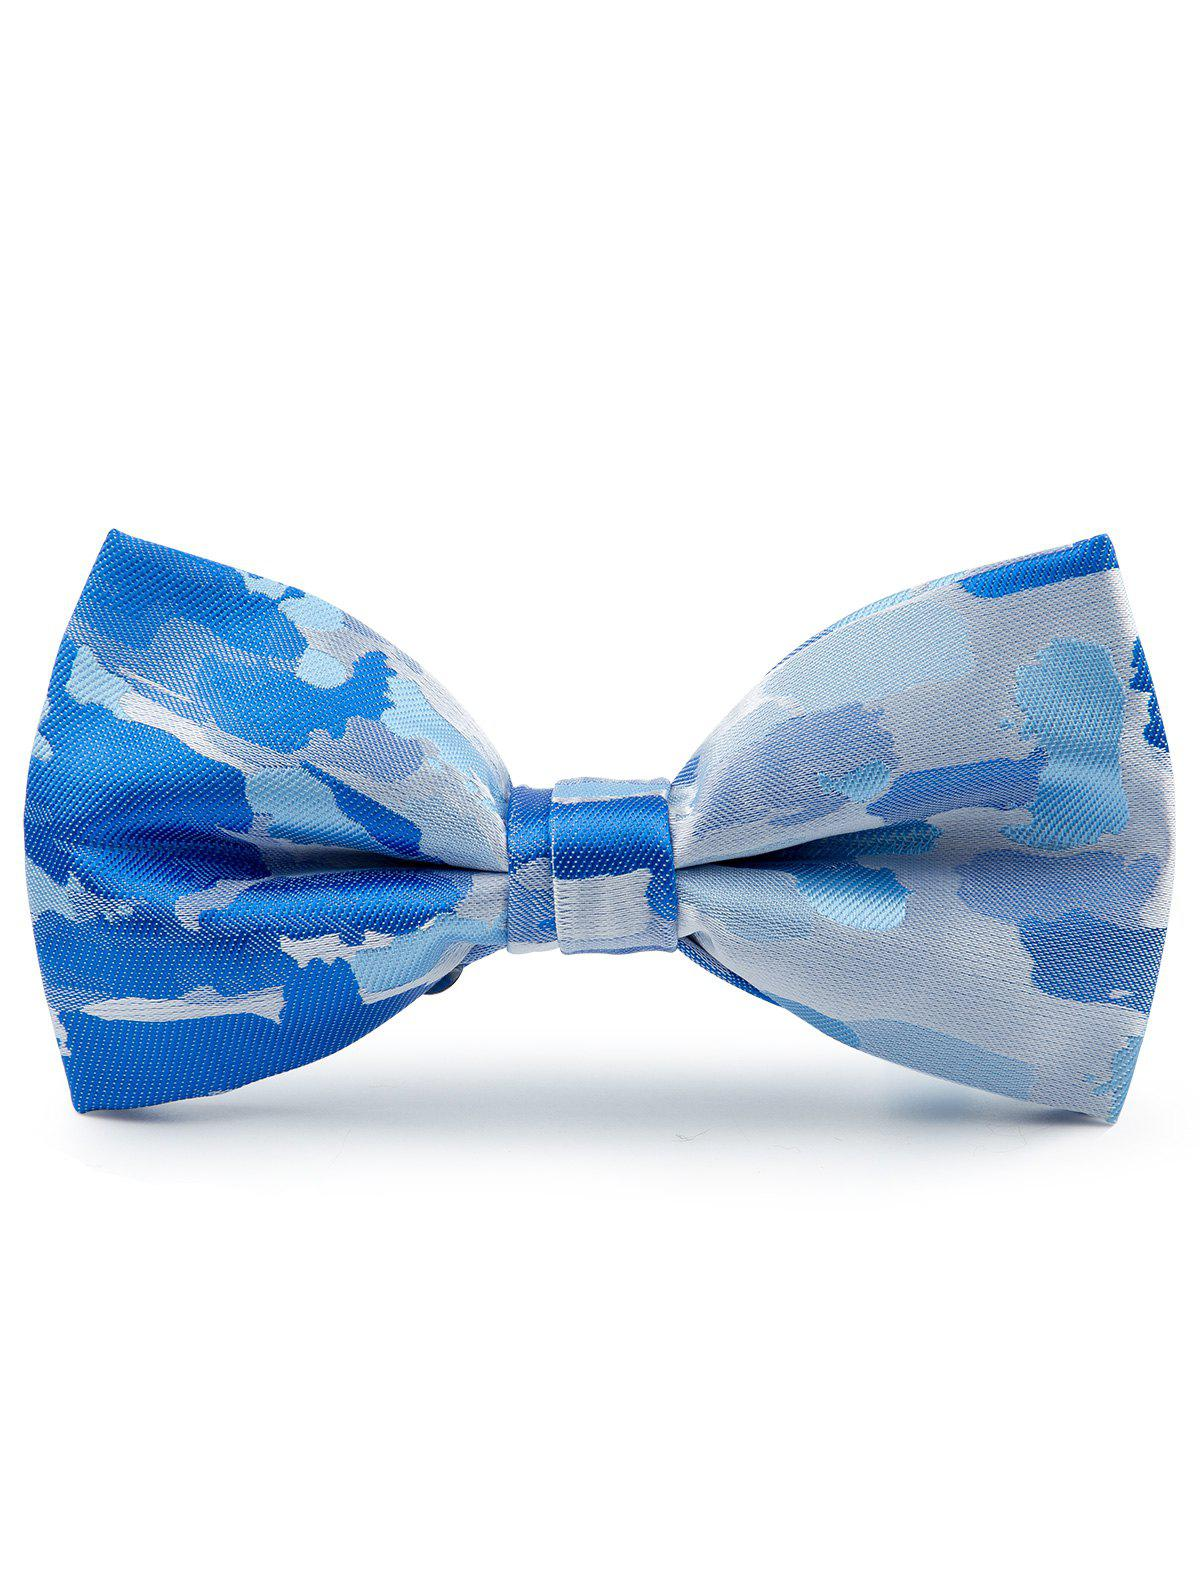 Jacquard Artificial Silk Bow Tie - Bleu clair